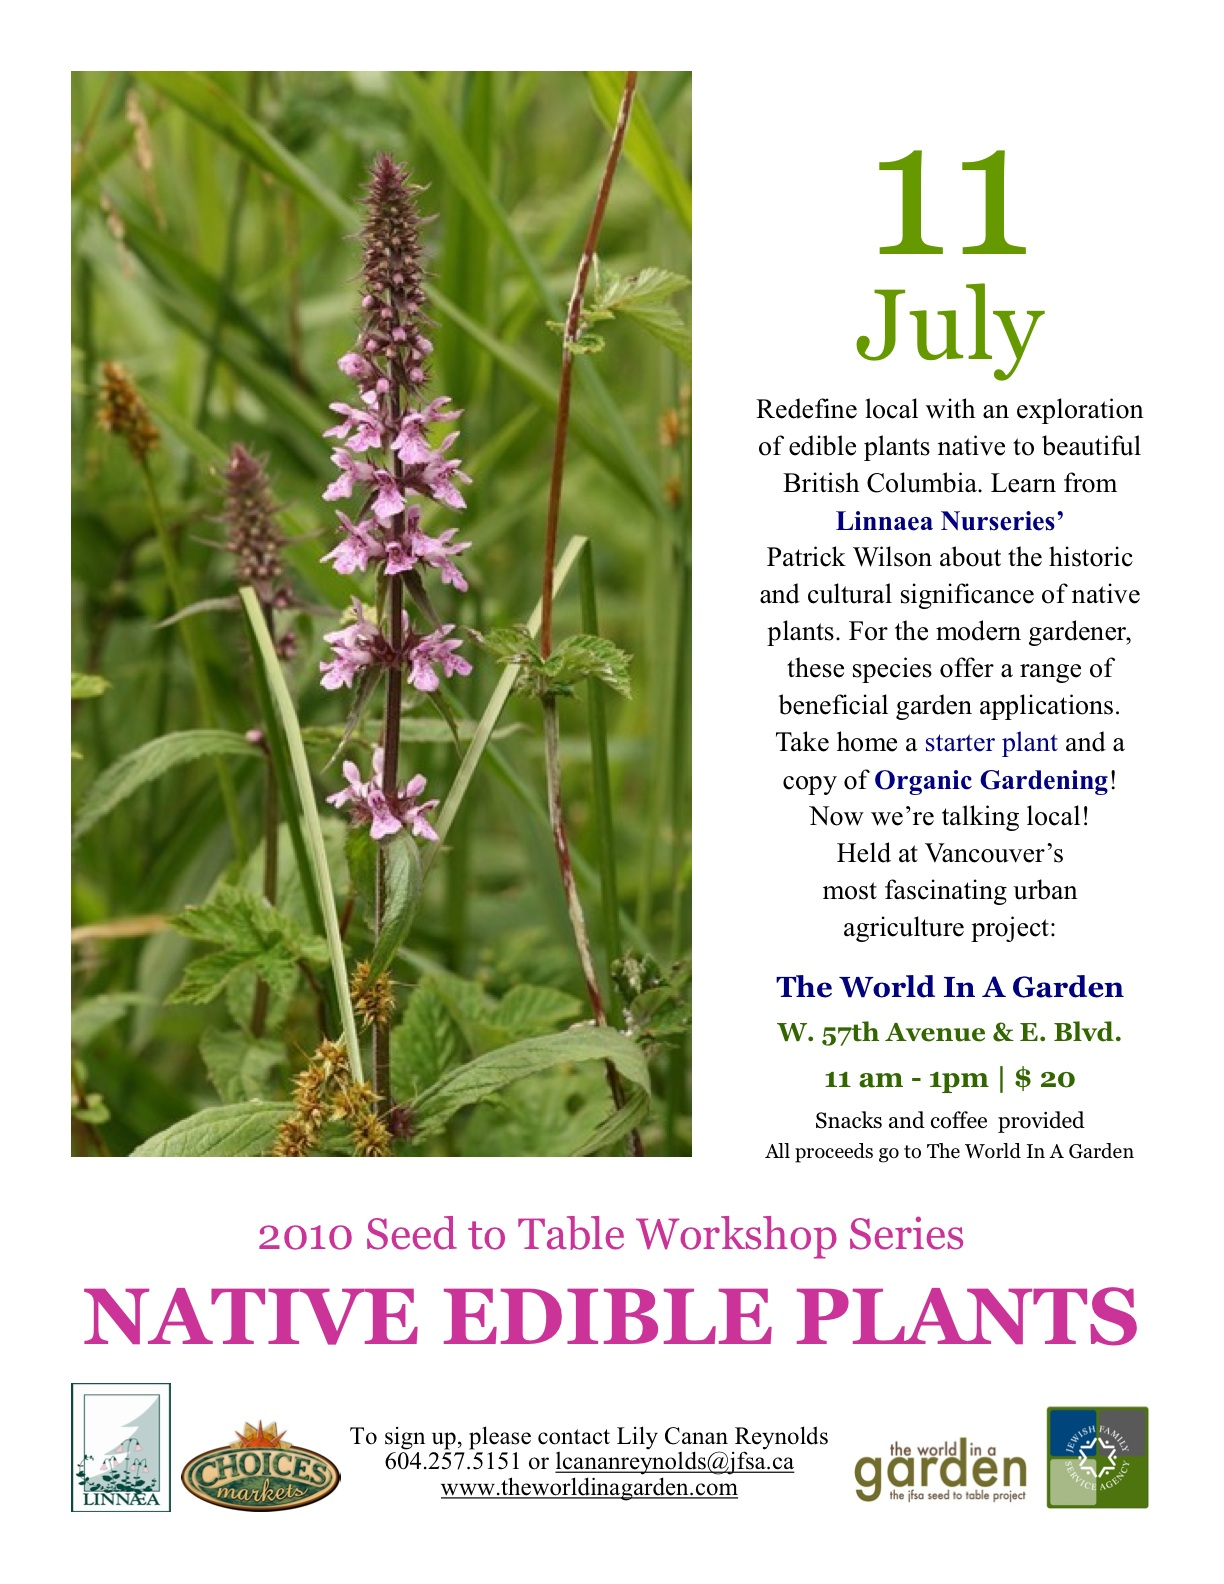 Native Edible Plants Workshop July 11th